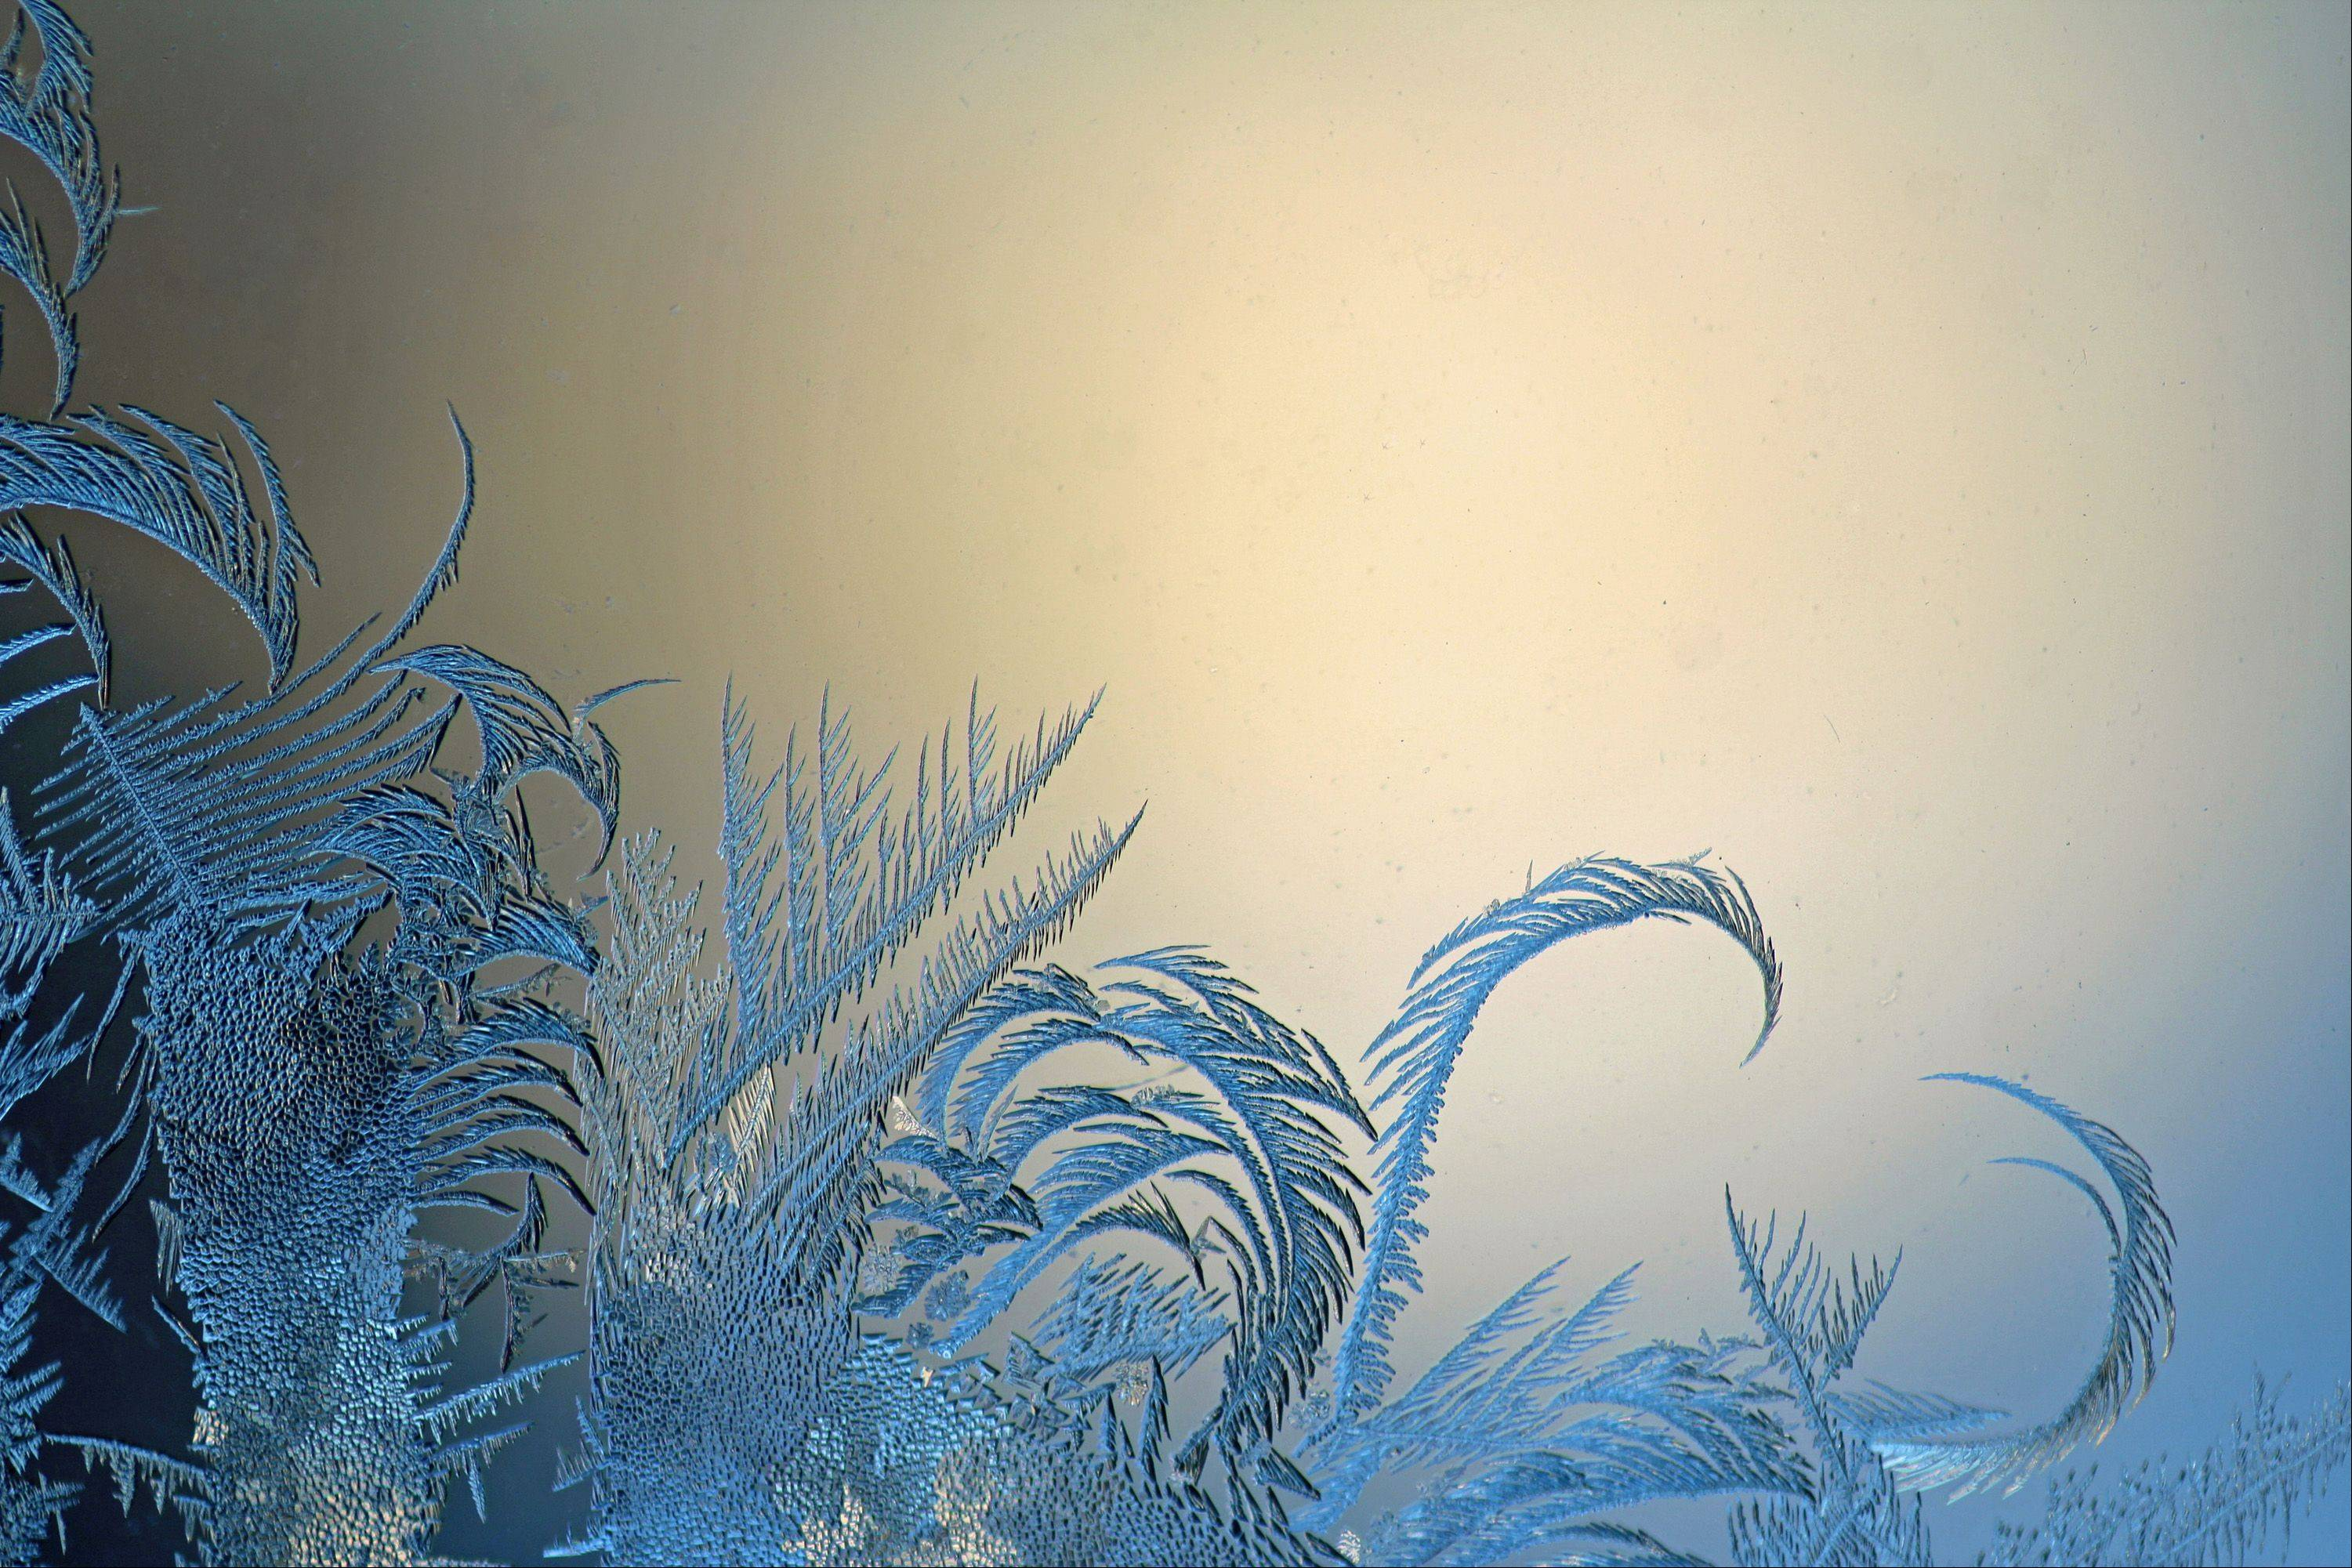 I used a macro lens to capture the frost on a window. The sunset provided a warm light that complemented the cool tones of the feather-like frost. Two of the frost feathers curl toward one another, almost in the shape of a heart.